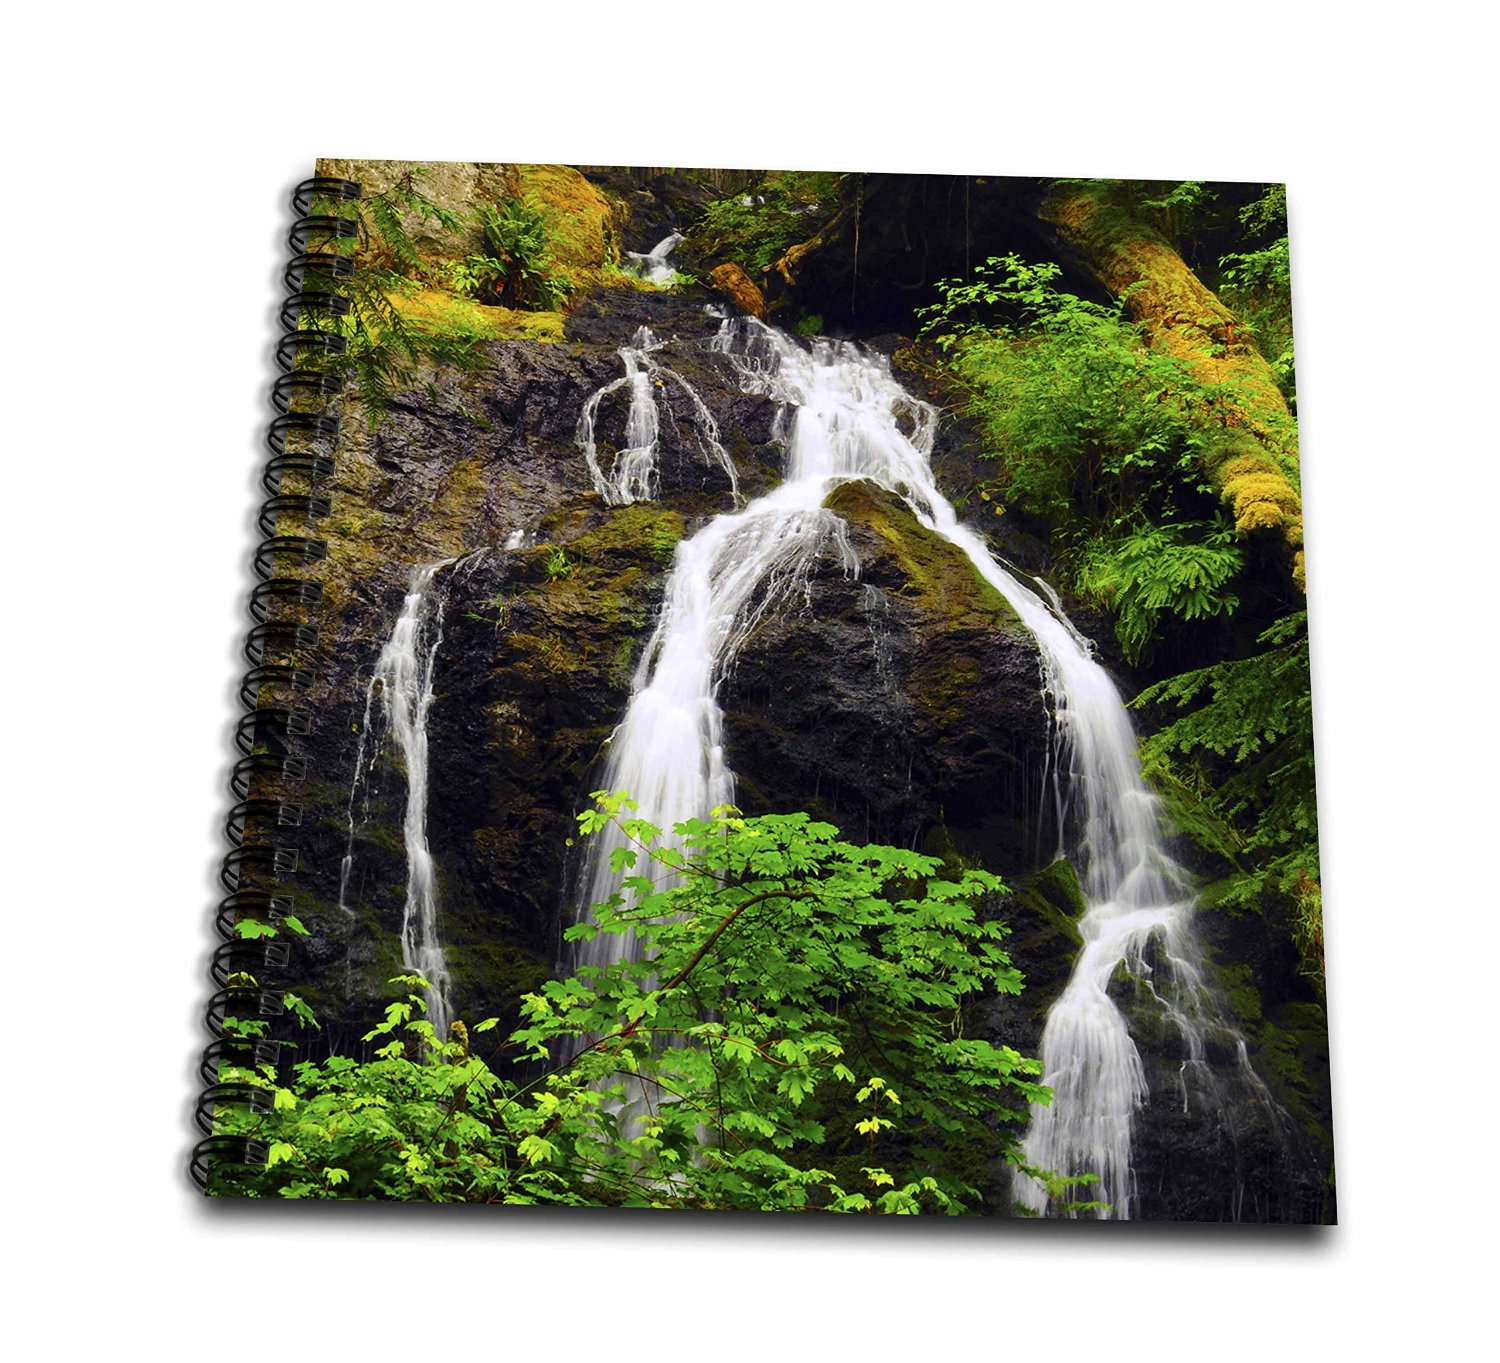 Danita Delimont - Waterfalls - Cascade Waterfalls, Orcas Island, Washington, USA - US48 MHE0023 - Michel Hersen - Memory Book 12 x 12 inch (db_148367_2)